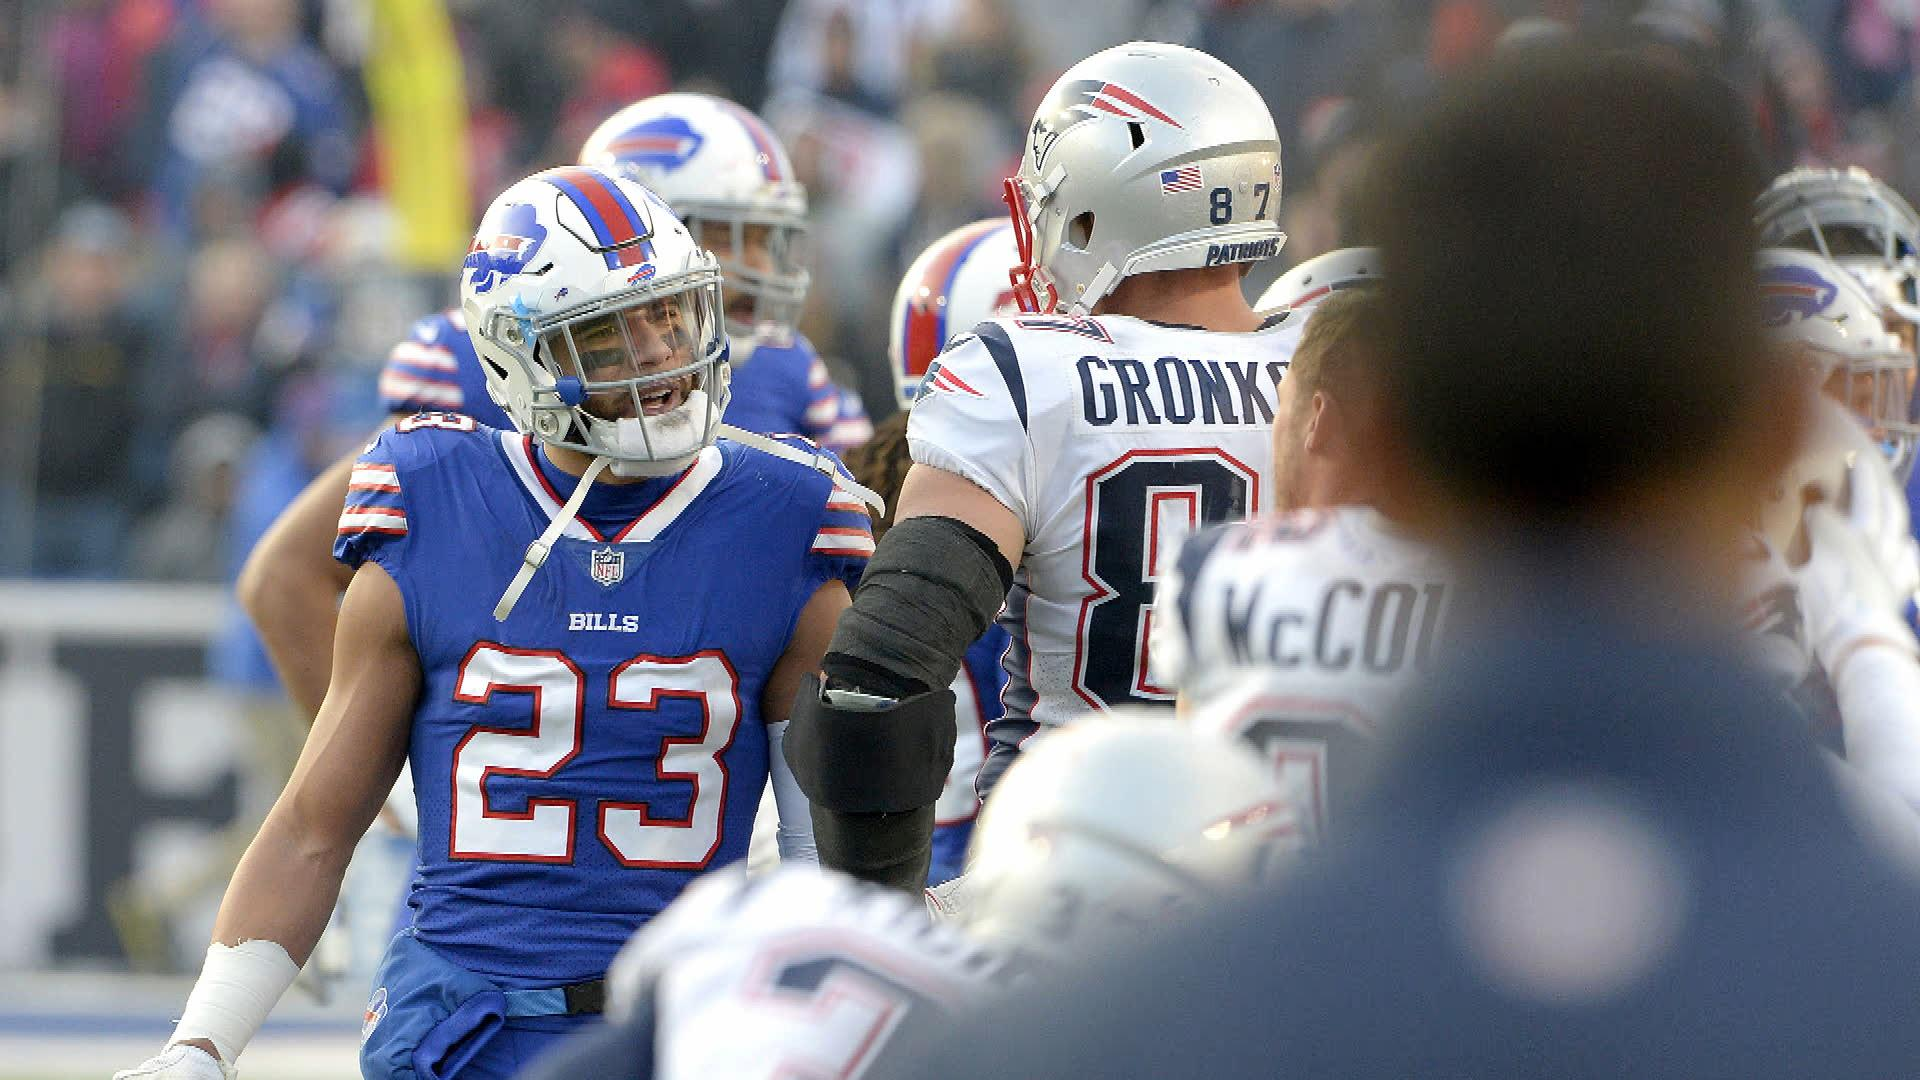 fdff76e6ac7 Rob Gronkowski faces NFL suspension for vicious hit on Bills opponent